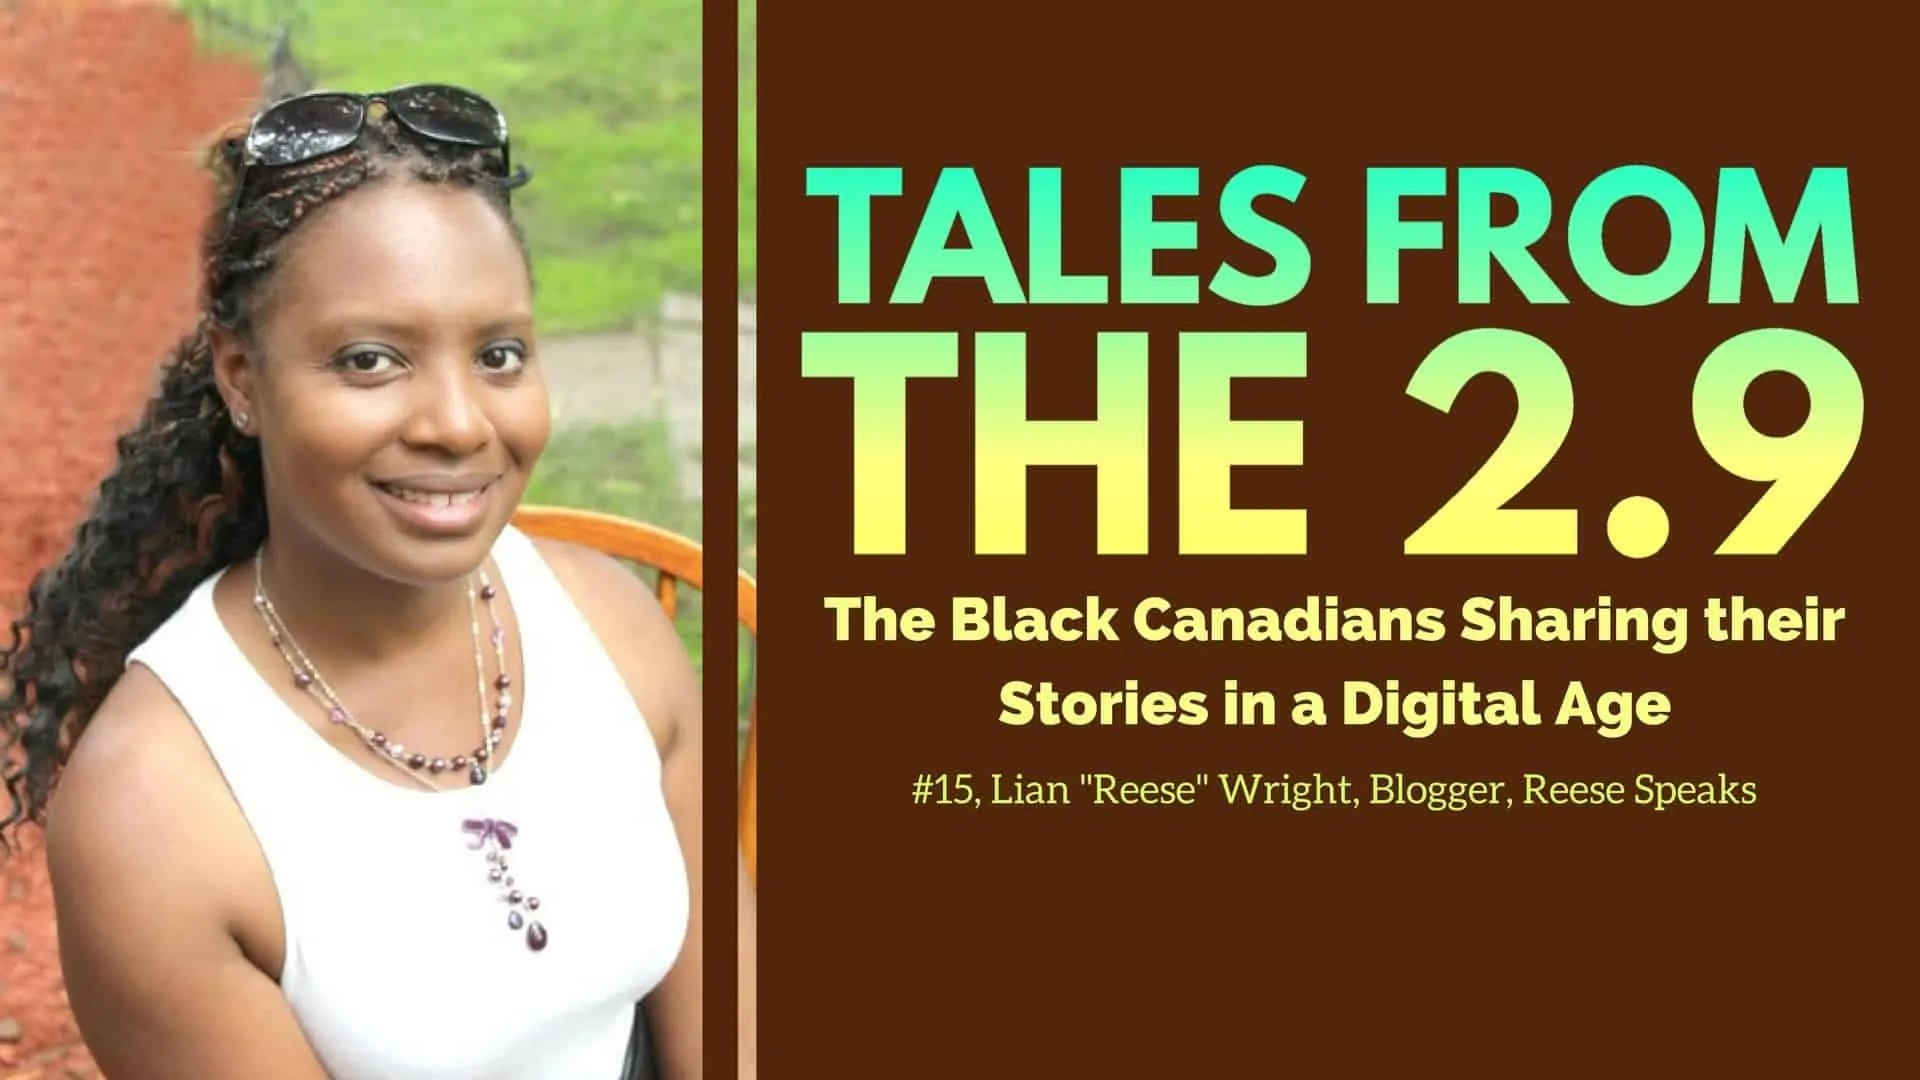 Tales from the 2.9 — The Black Canadians Sharing their Stories in a Digital Age — Vol. 2 #15, Lian -Reese- Wright, Blogger, Reese Speaks (Featured Image)